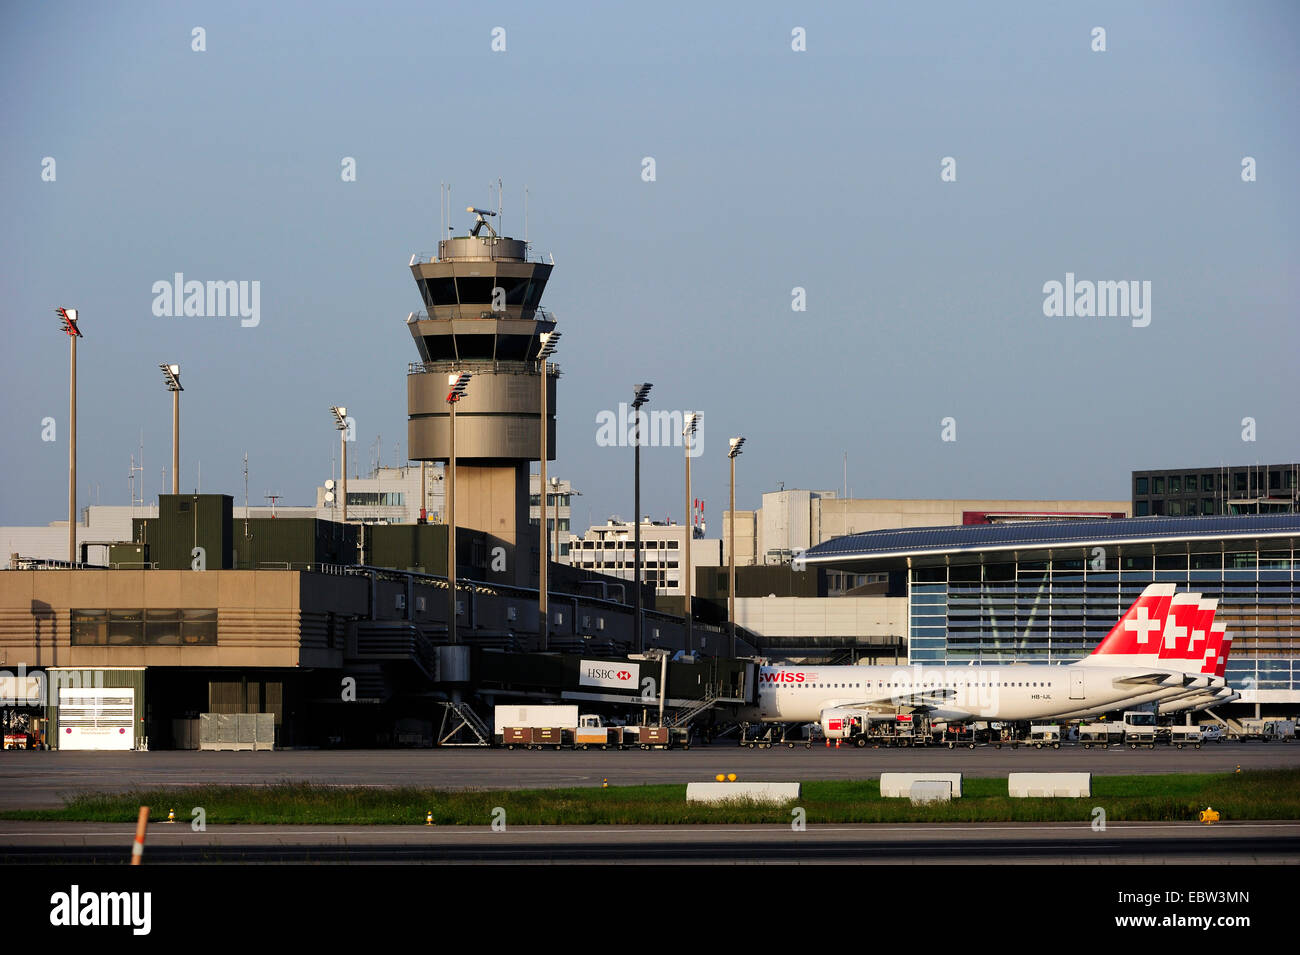 Zurich airport, Switzerland, Zurich - Stock Image